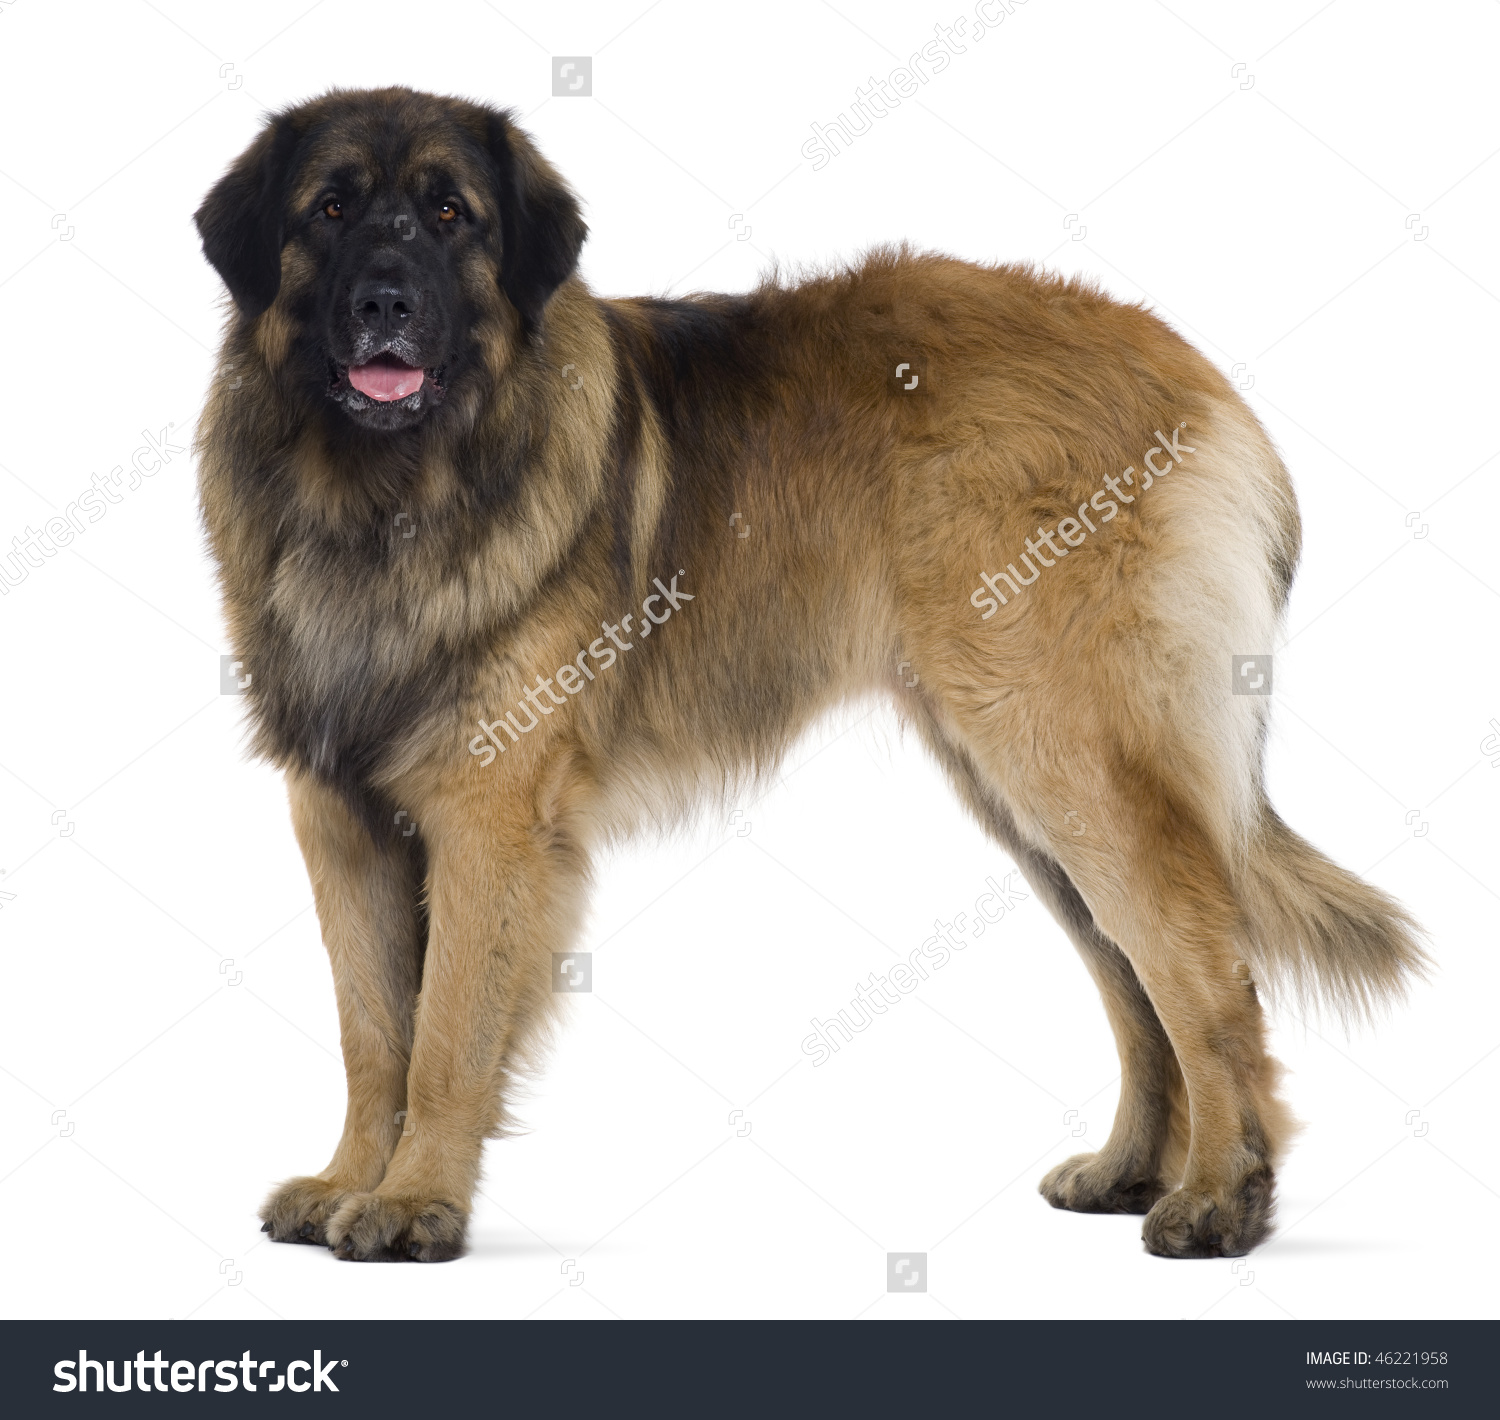 Leonberger Dog, 2 Years Old, Standing In Front Of White Background.